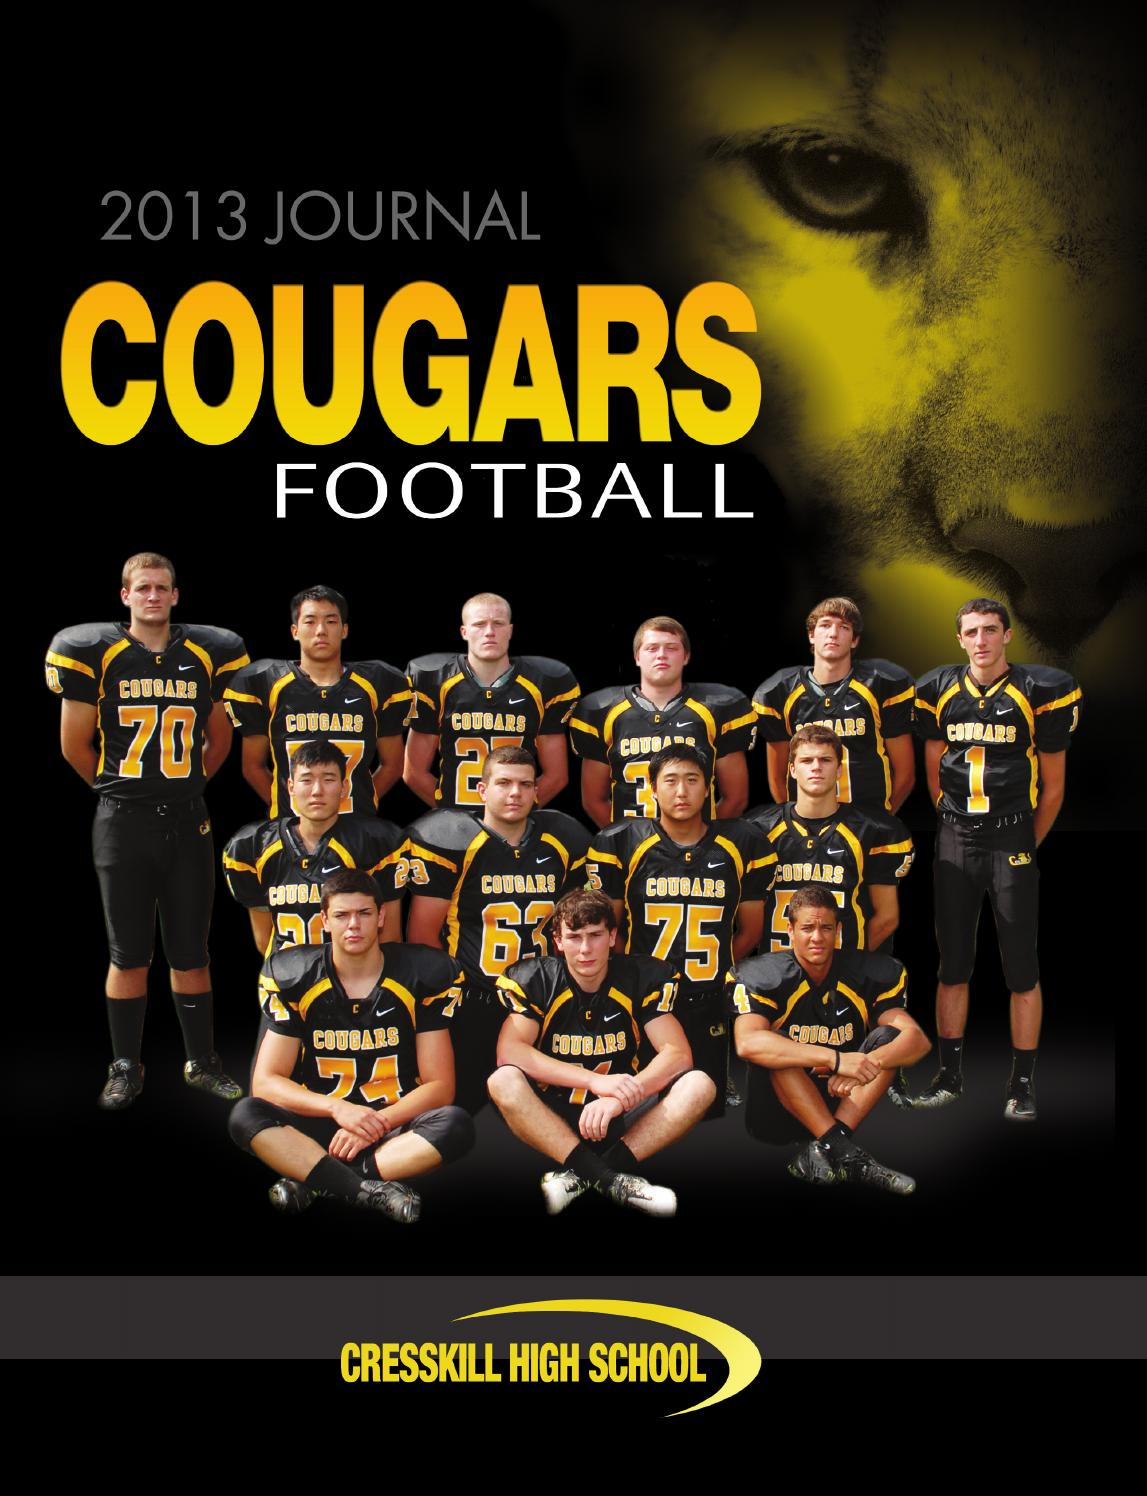 Farmhouse Cresskill Cresskill High School Football 2013 By Momentummedia Issuu